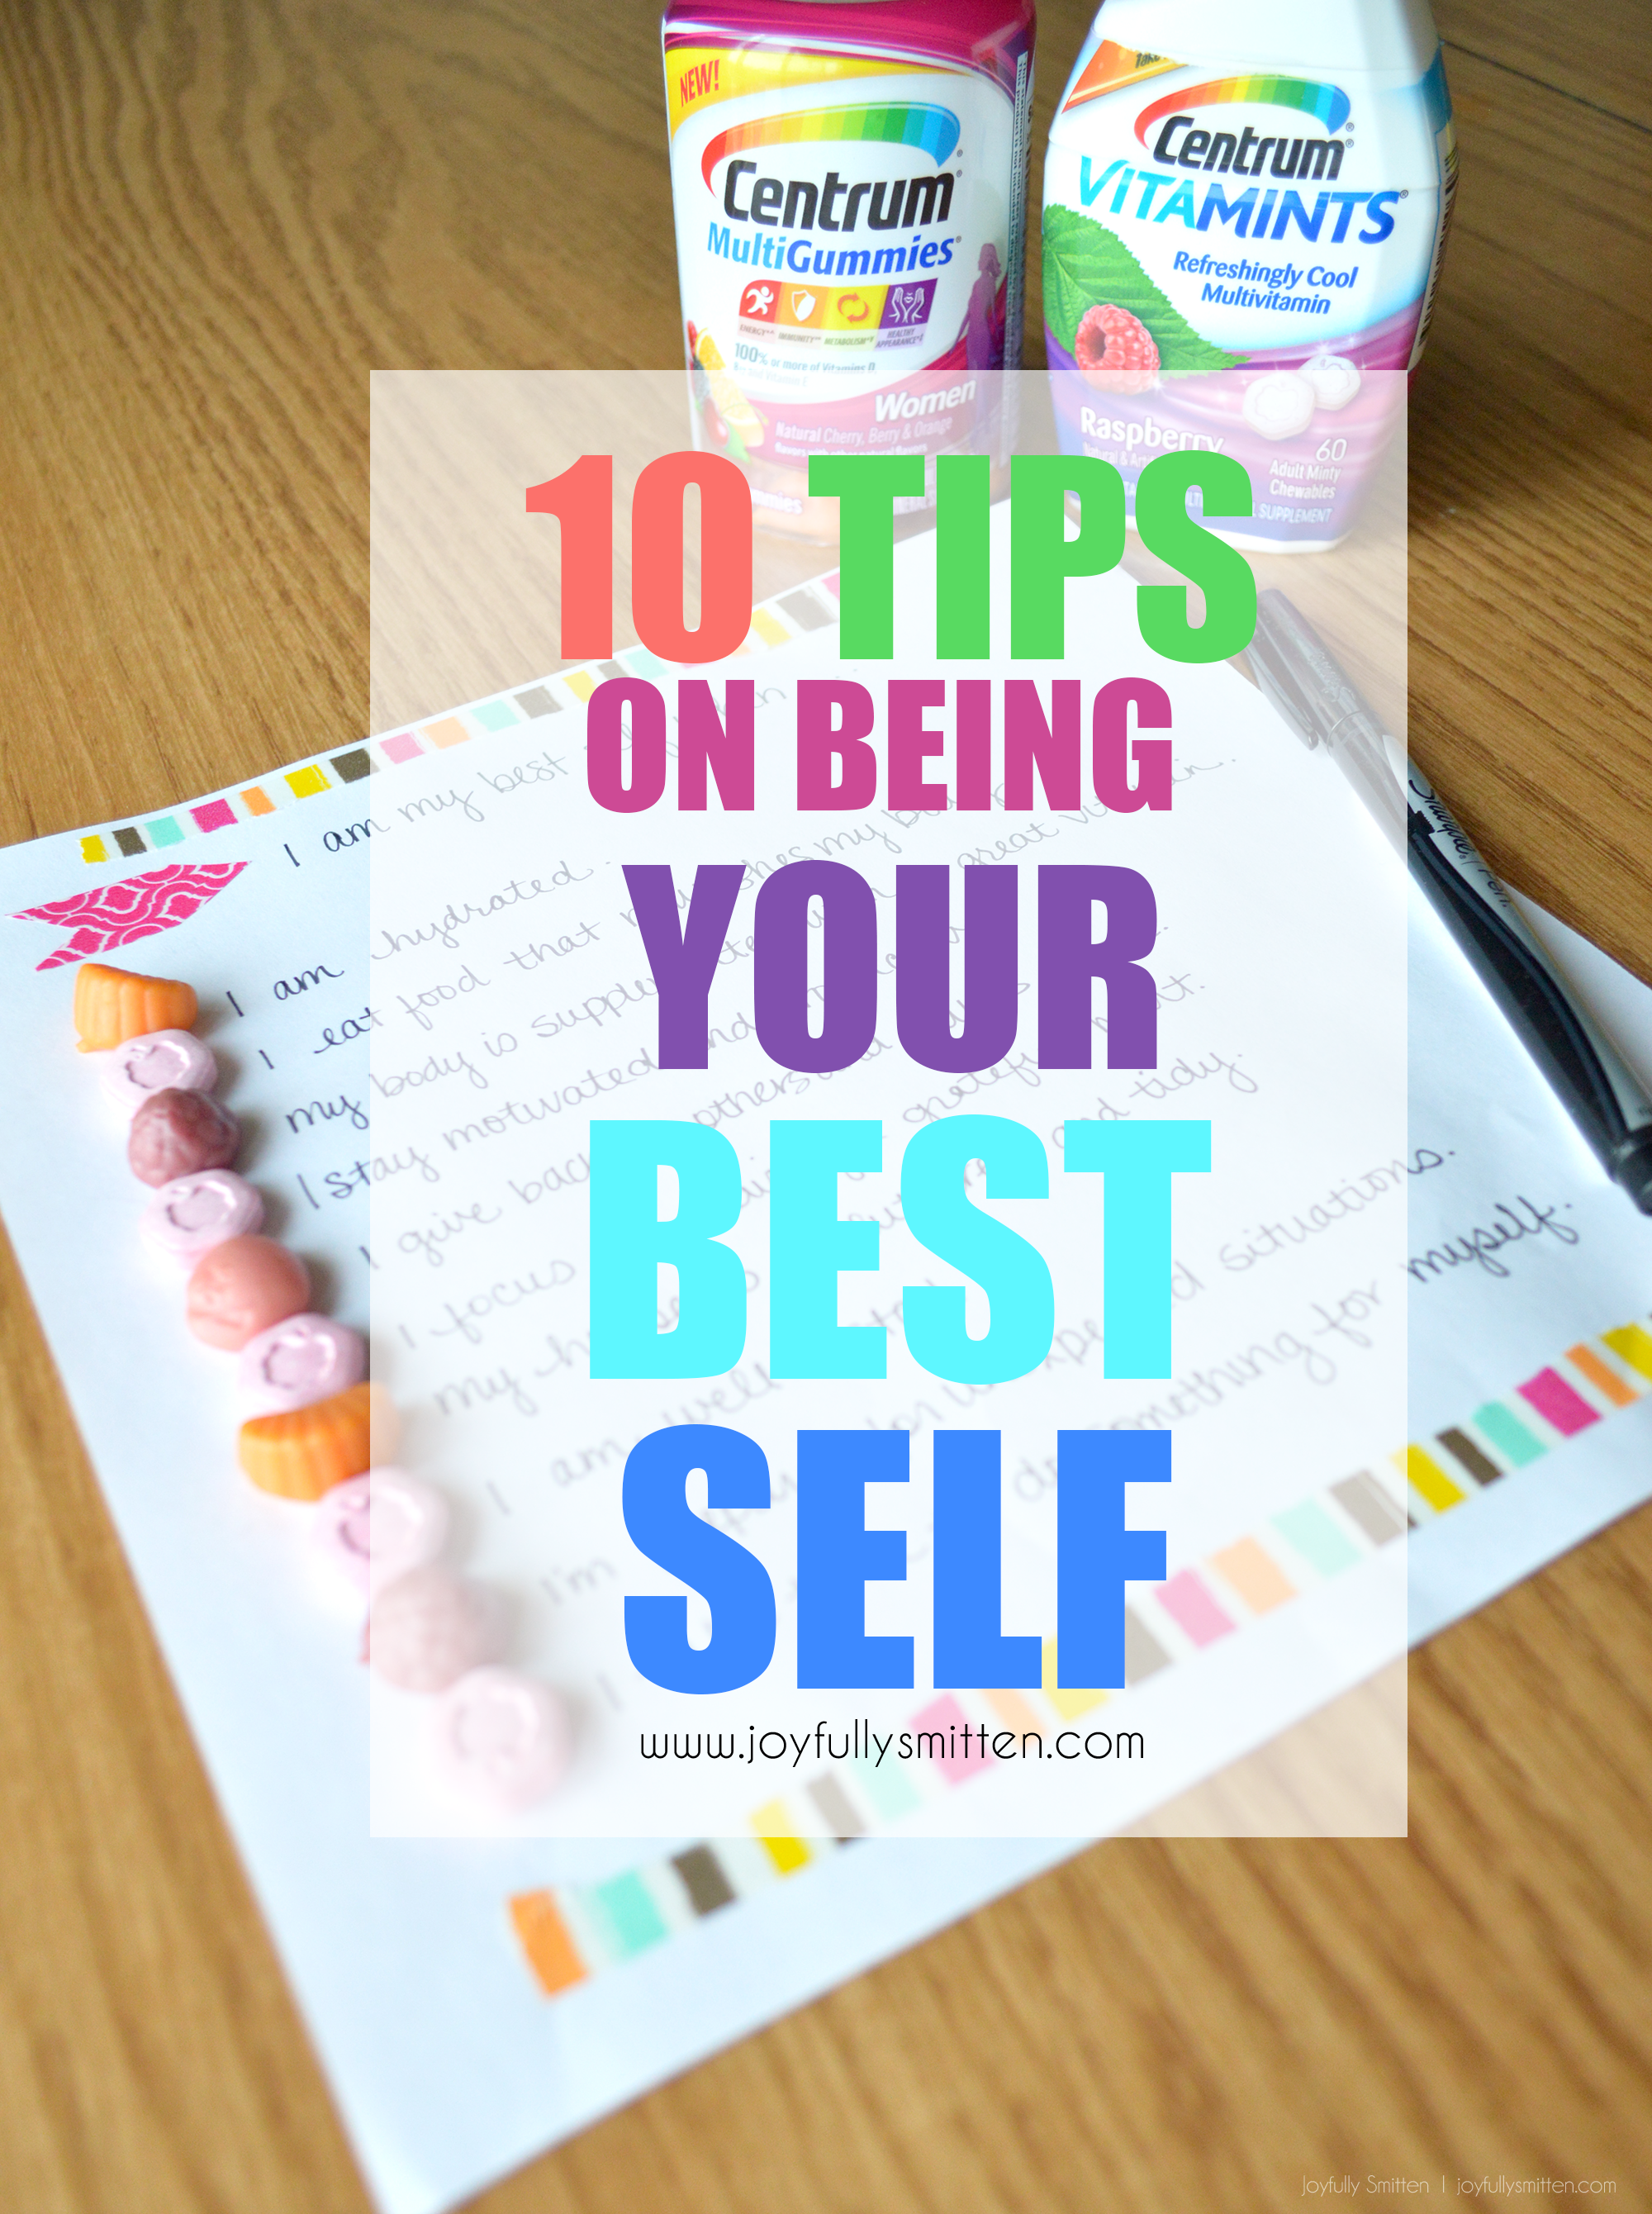 10 Tips on Being Your Best Self